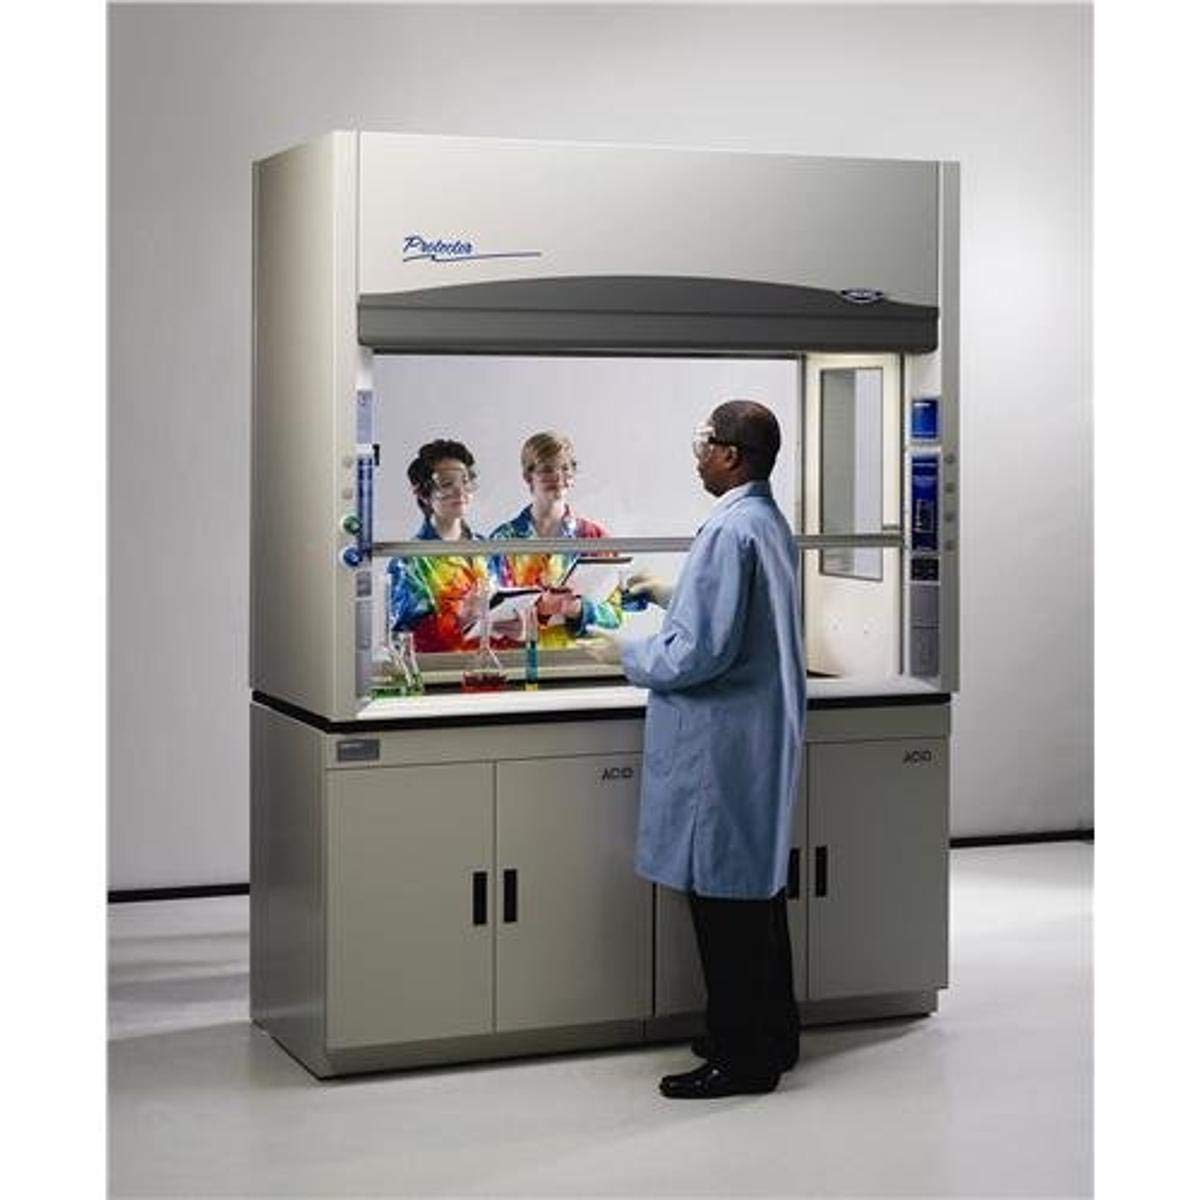 Labconco 113407021 Protector Pass-Through Super intense SALE 2 New arrival Hood Laboratory with